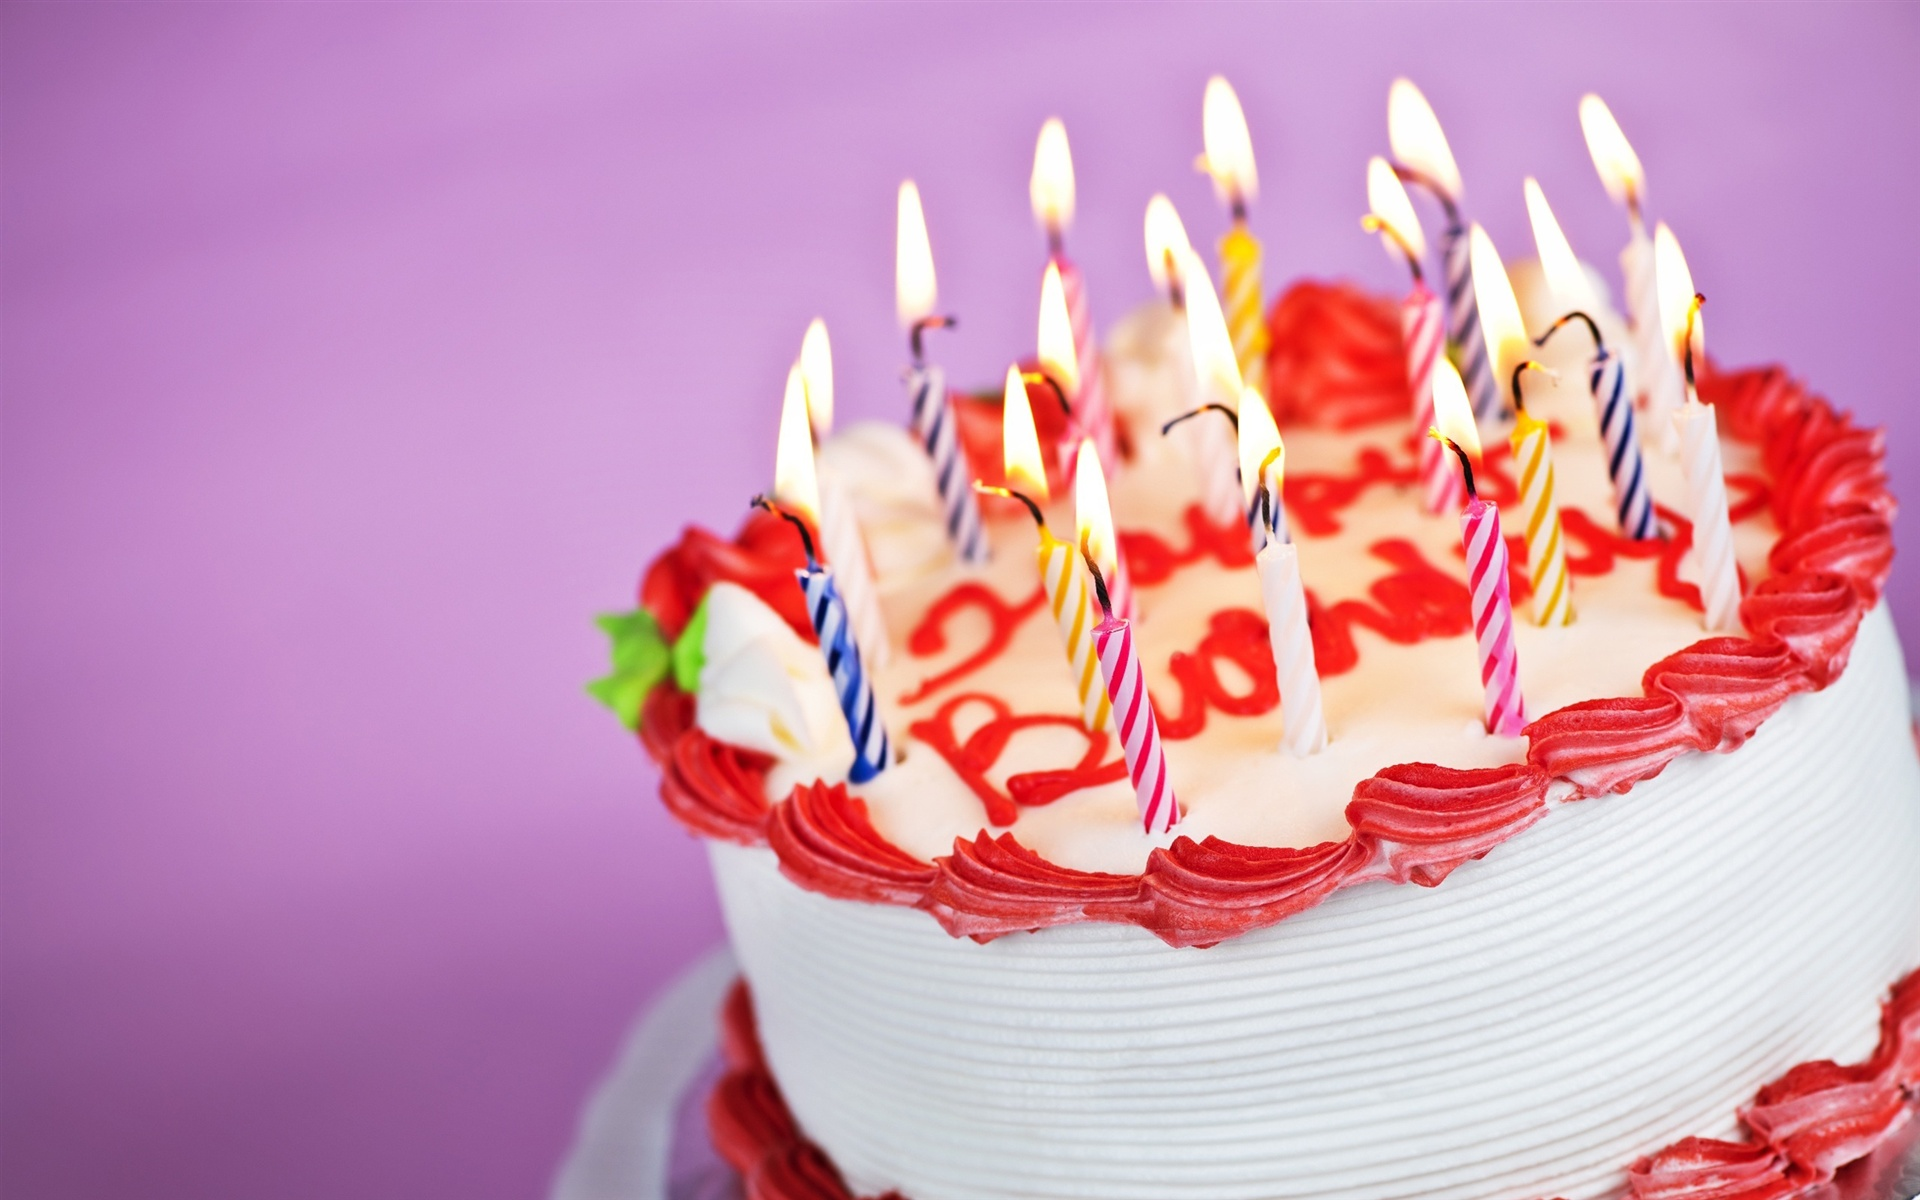 Delicious birthday cake Wallpaper 1920x1200 resolution ...